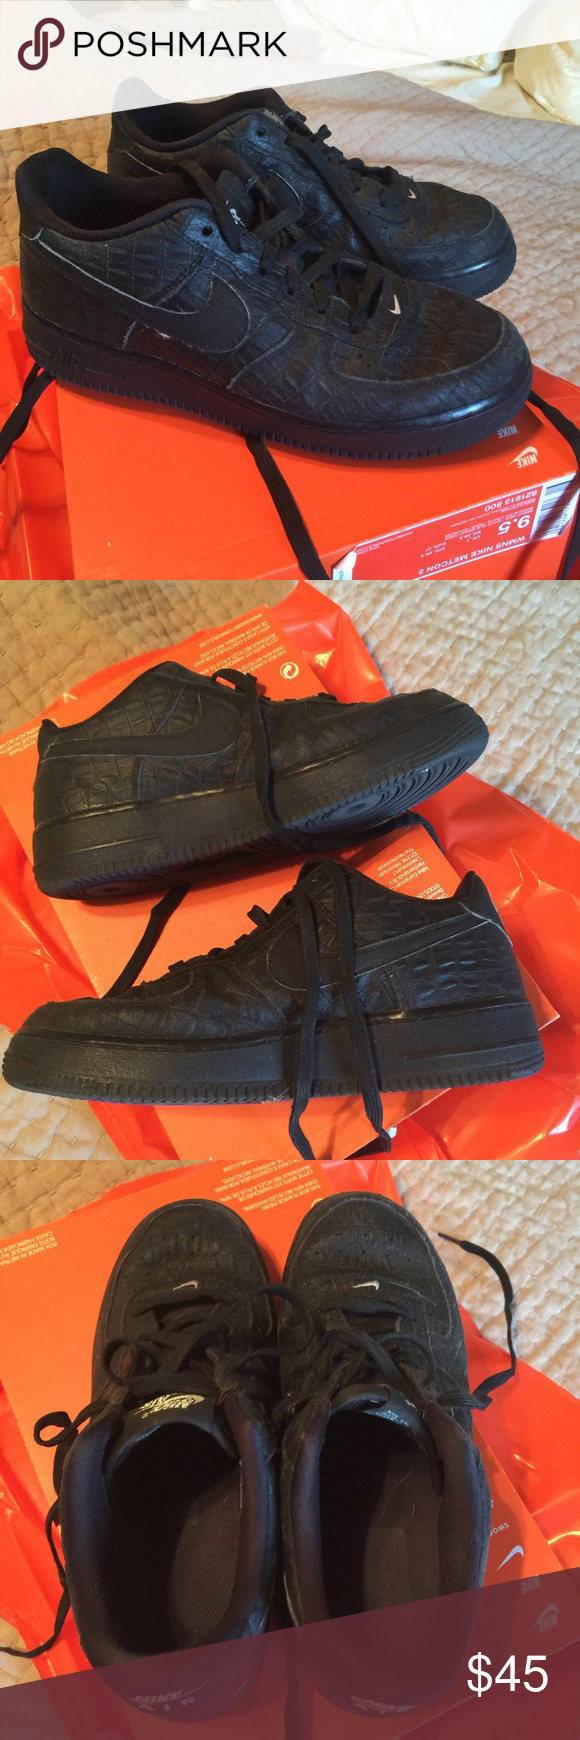 Nike Air Force reptile Shoes Bought worn, laced need to be replaced. Reptile print, very well taken care of, inside is piling though. NOT ORIGINAL BOX, but will come with box to store in and Nike bag. Offers welcome. Price reflects the worn on inside. Offers welcome always Nike Shoes Sneakers